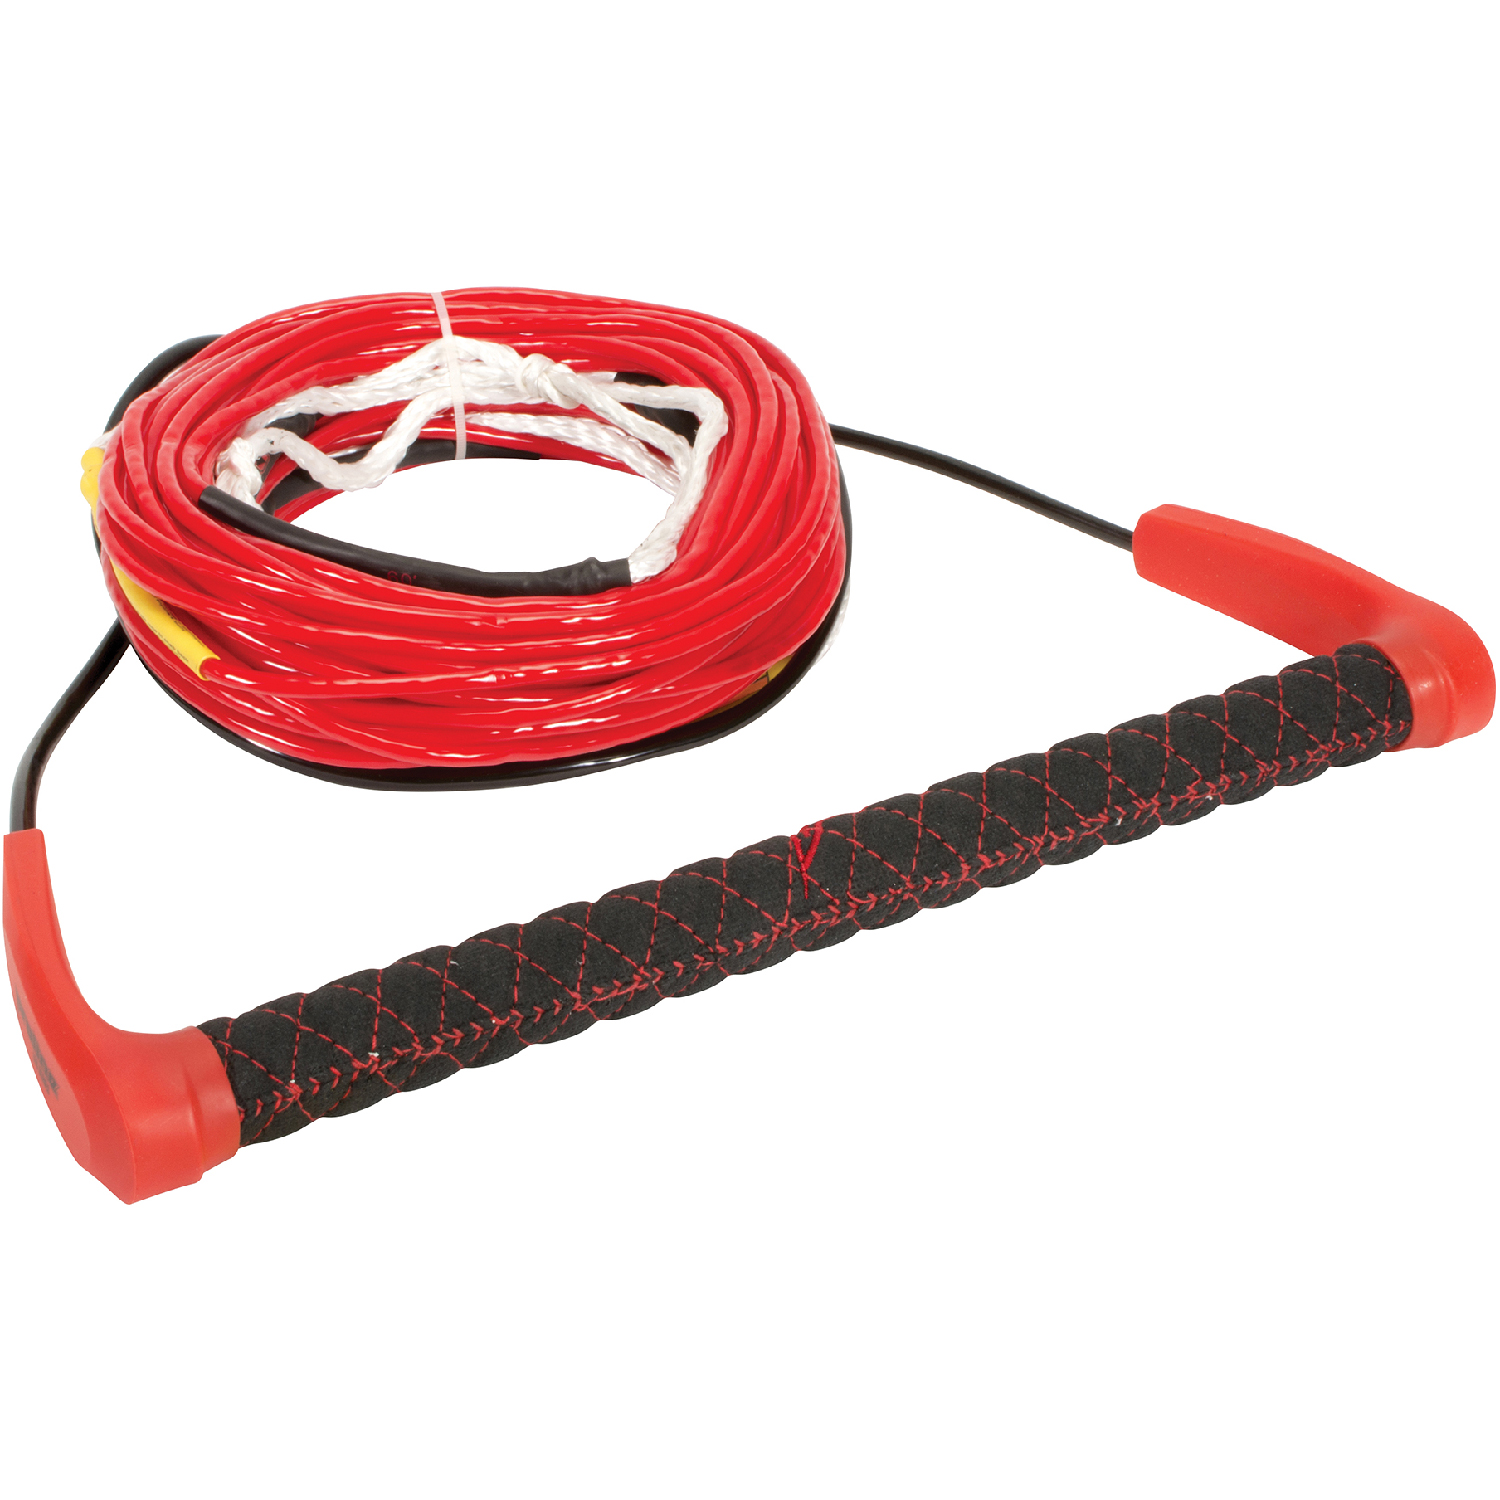 Proline 2018 75' LGS Package w  Dyneema Air (Red) Wakeboard Rope & Handle Combo by